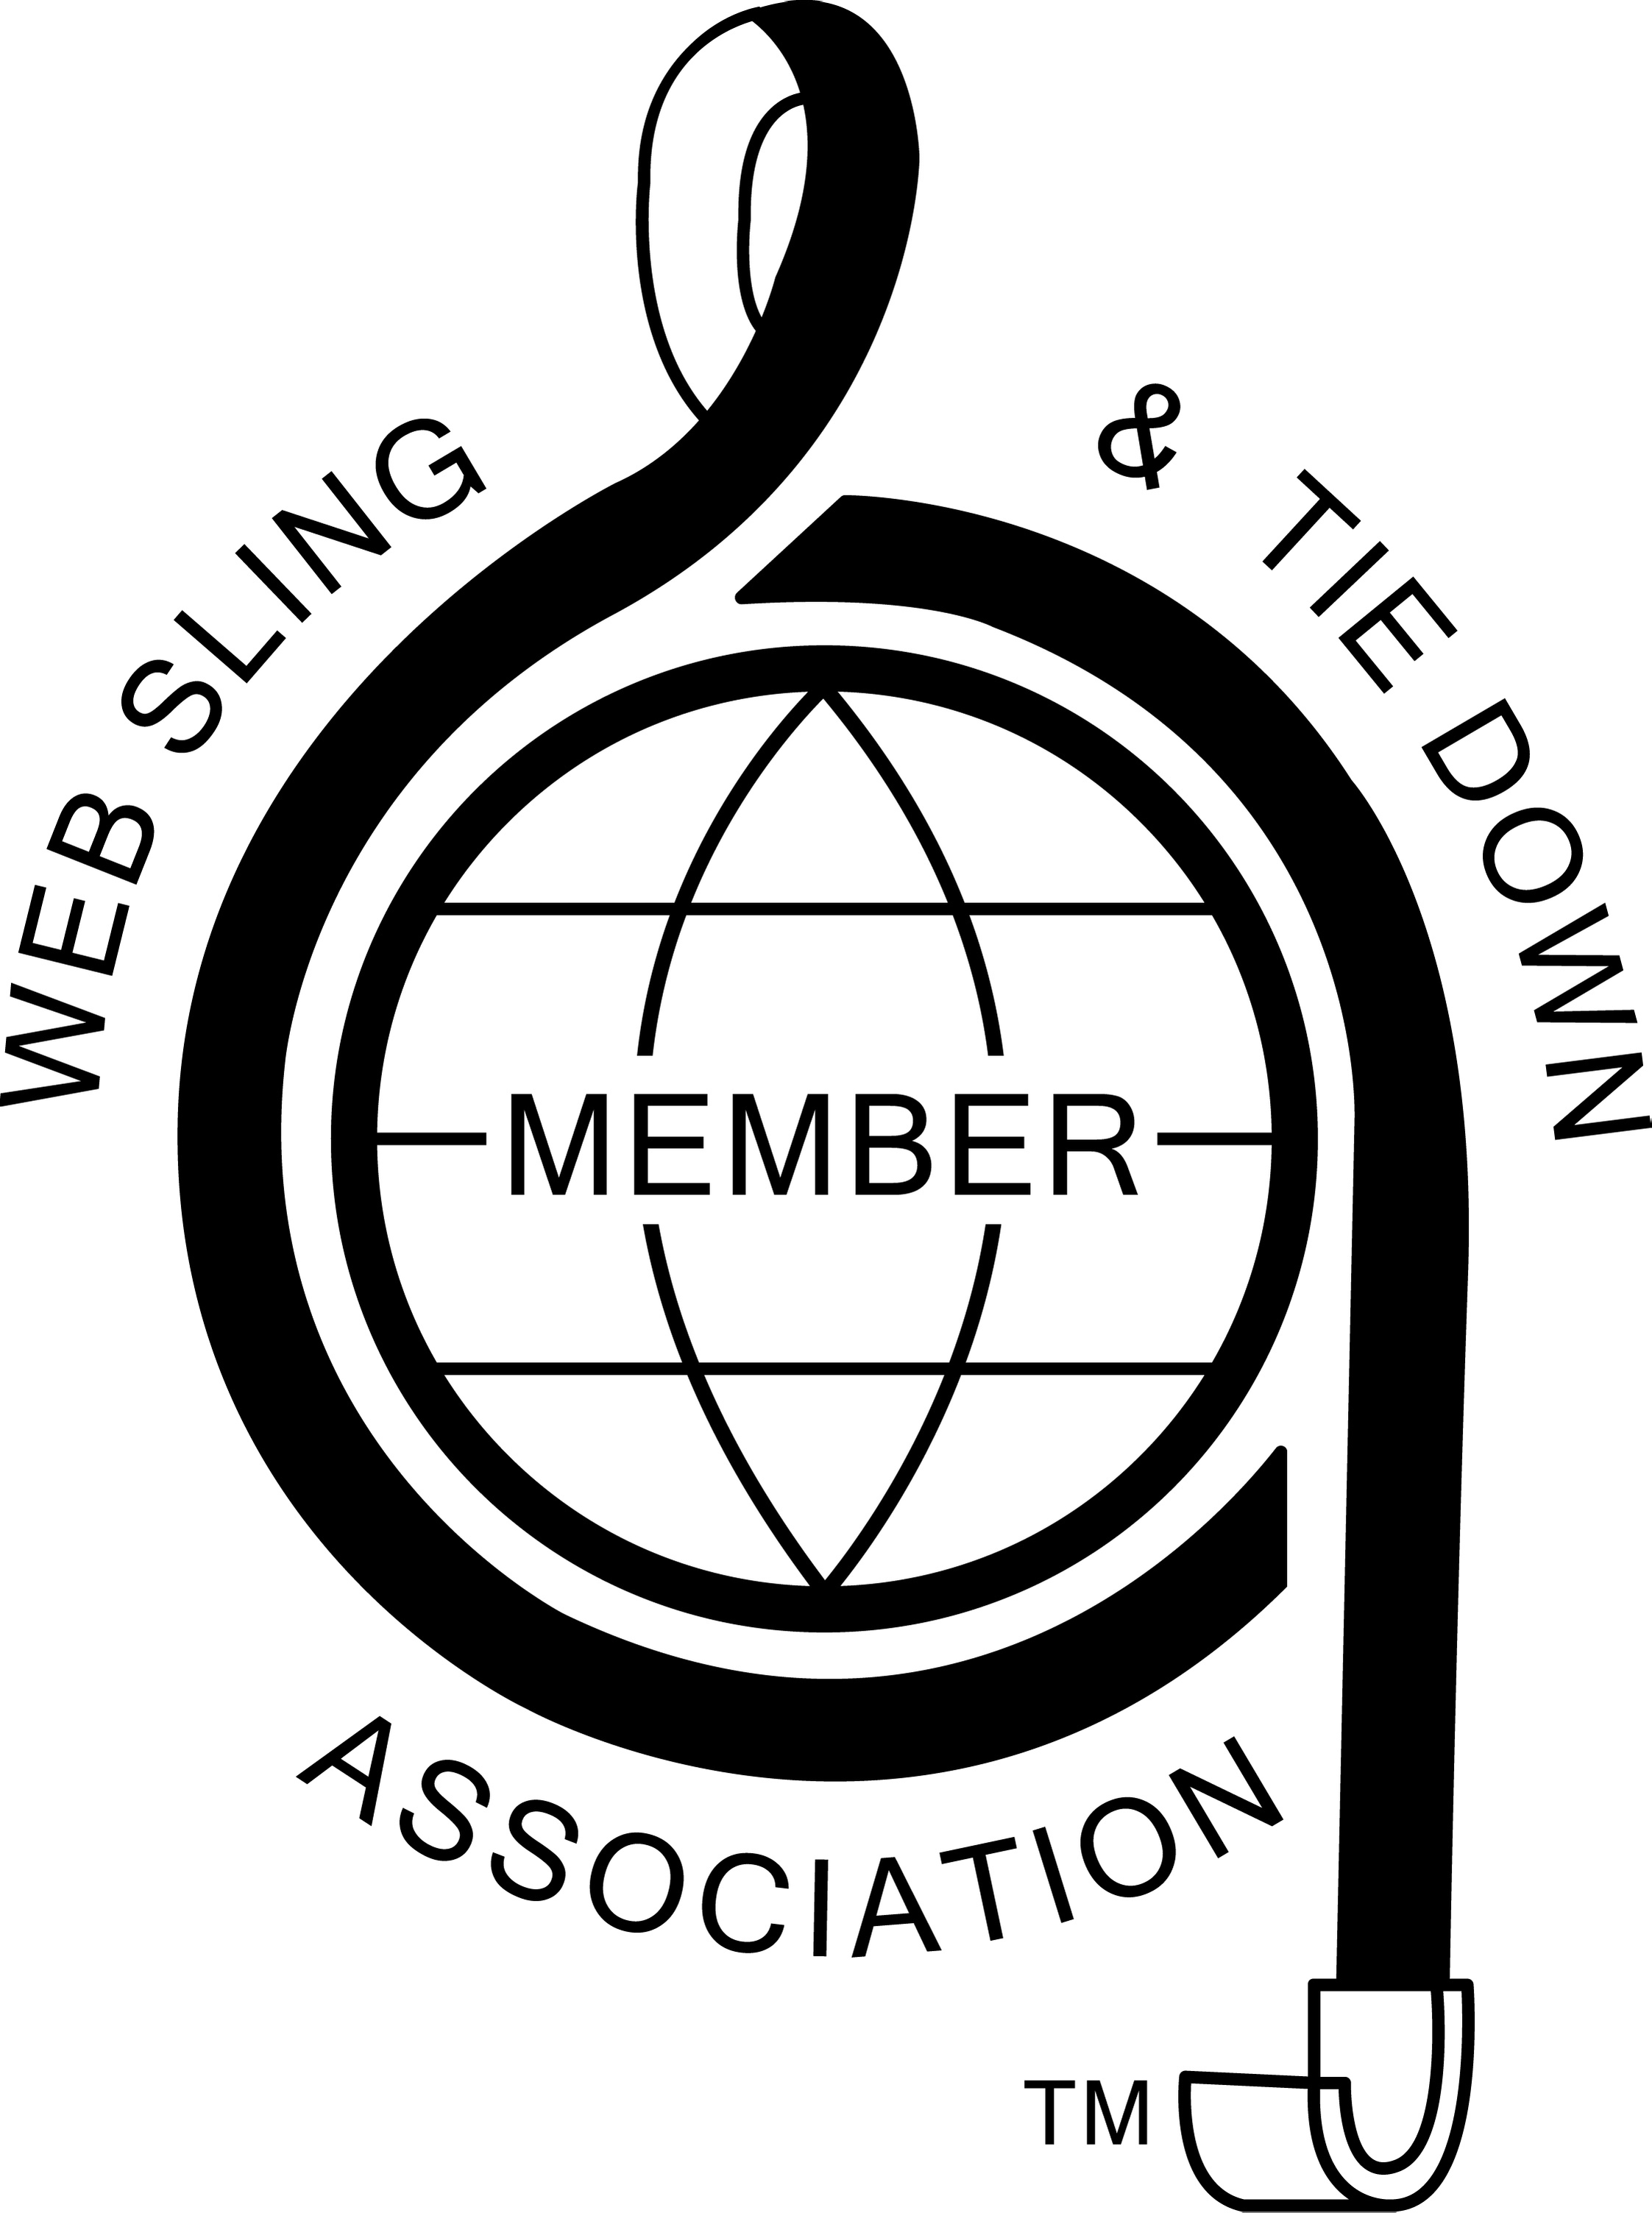 The Web Sling & Tie Down Association is a technical trade body dedicated to the safe operation of all synthetic web slings and tie downs.